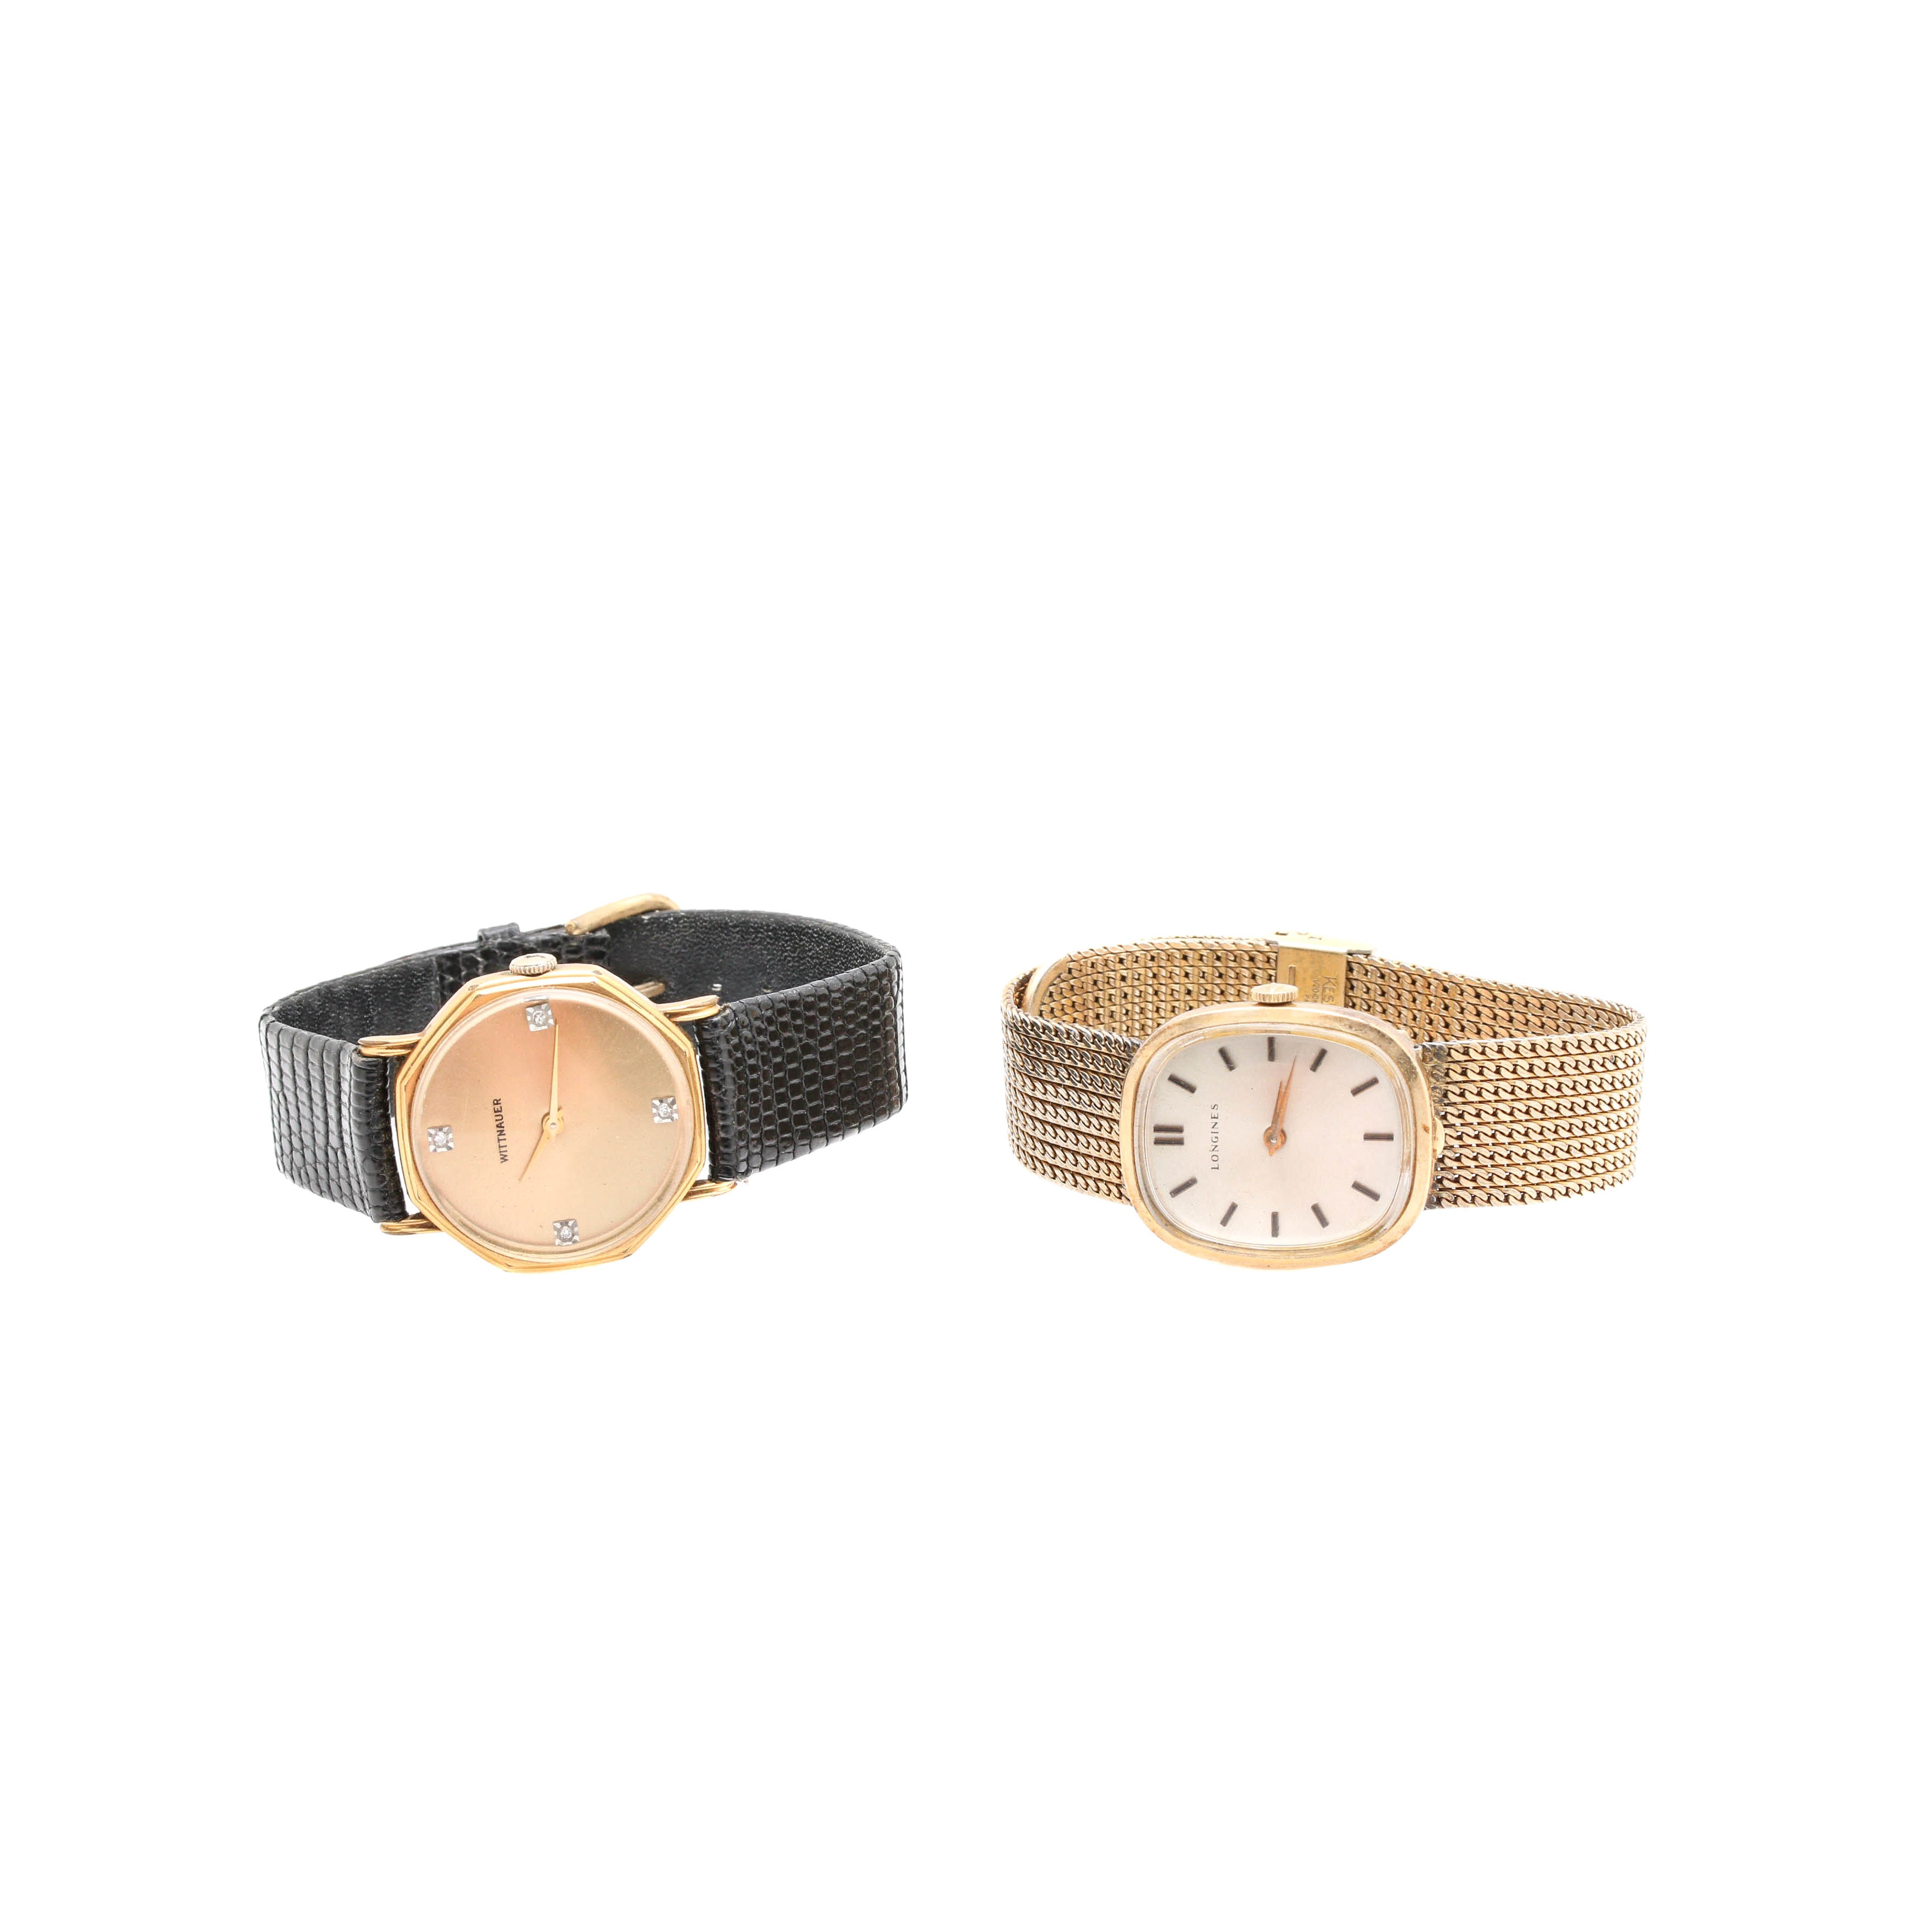 Longines and Wittnauer Gold Tone Wristwatch Selection Including Diamonds